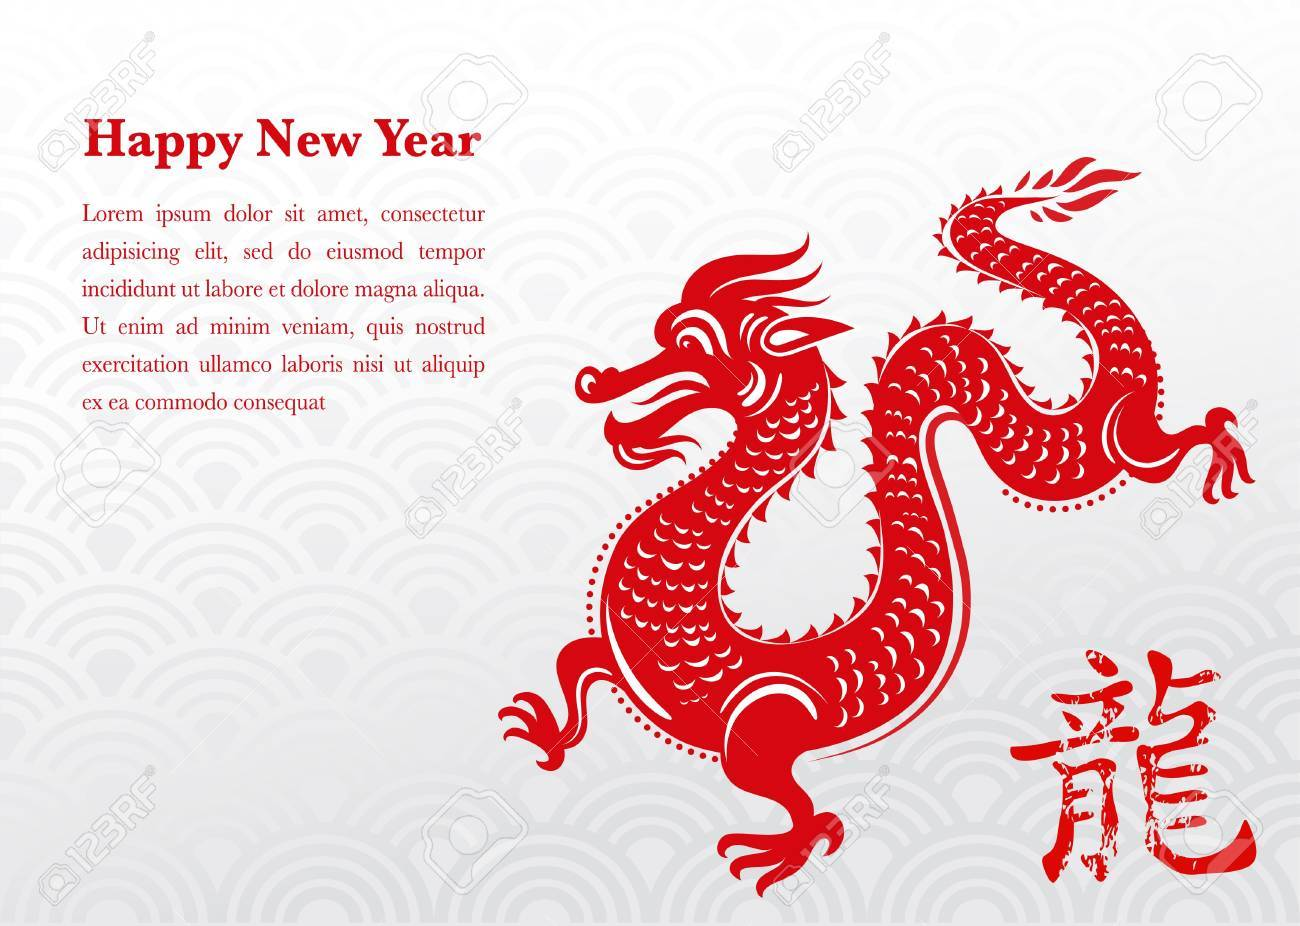 Year of Dragon, Chinese New Year Stock Vector - 11037708